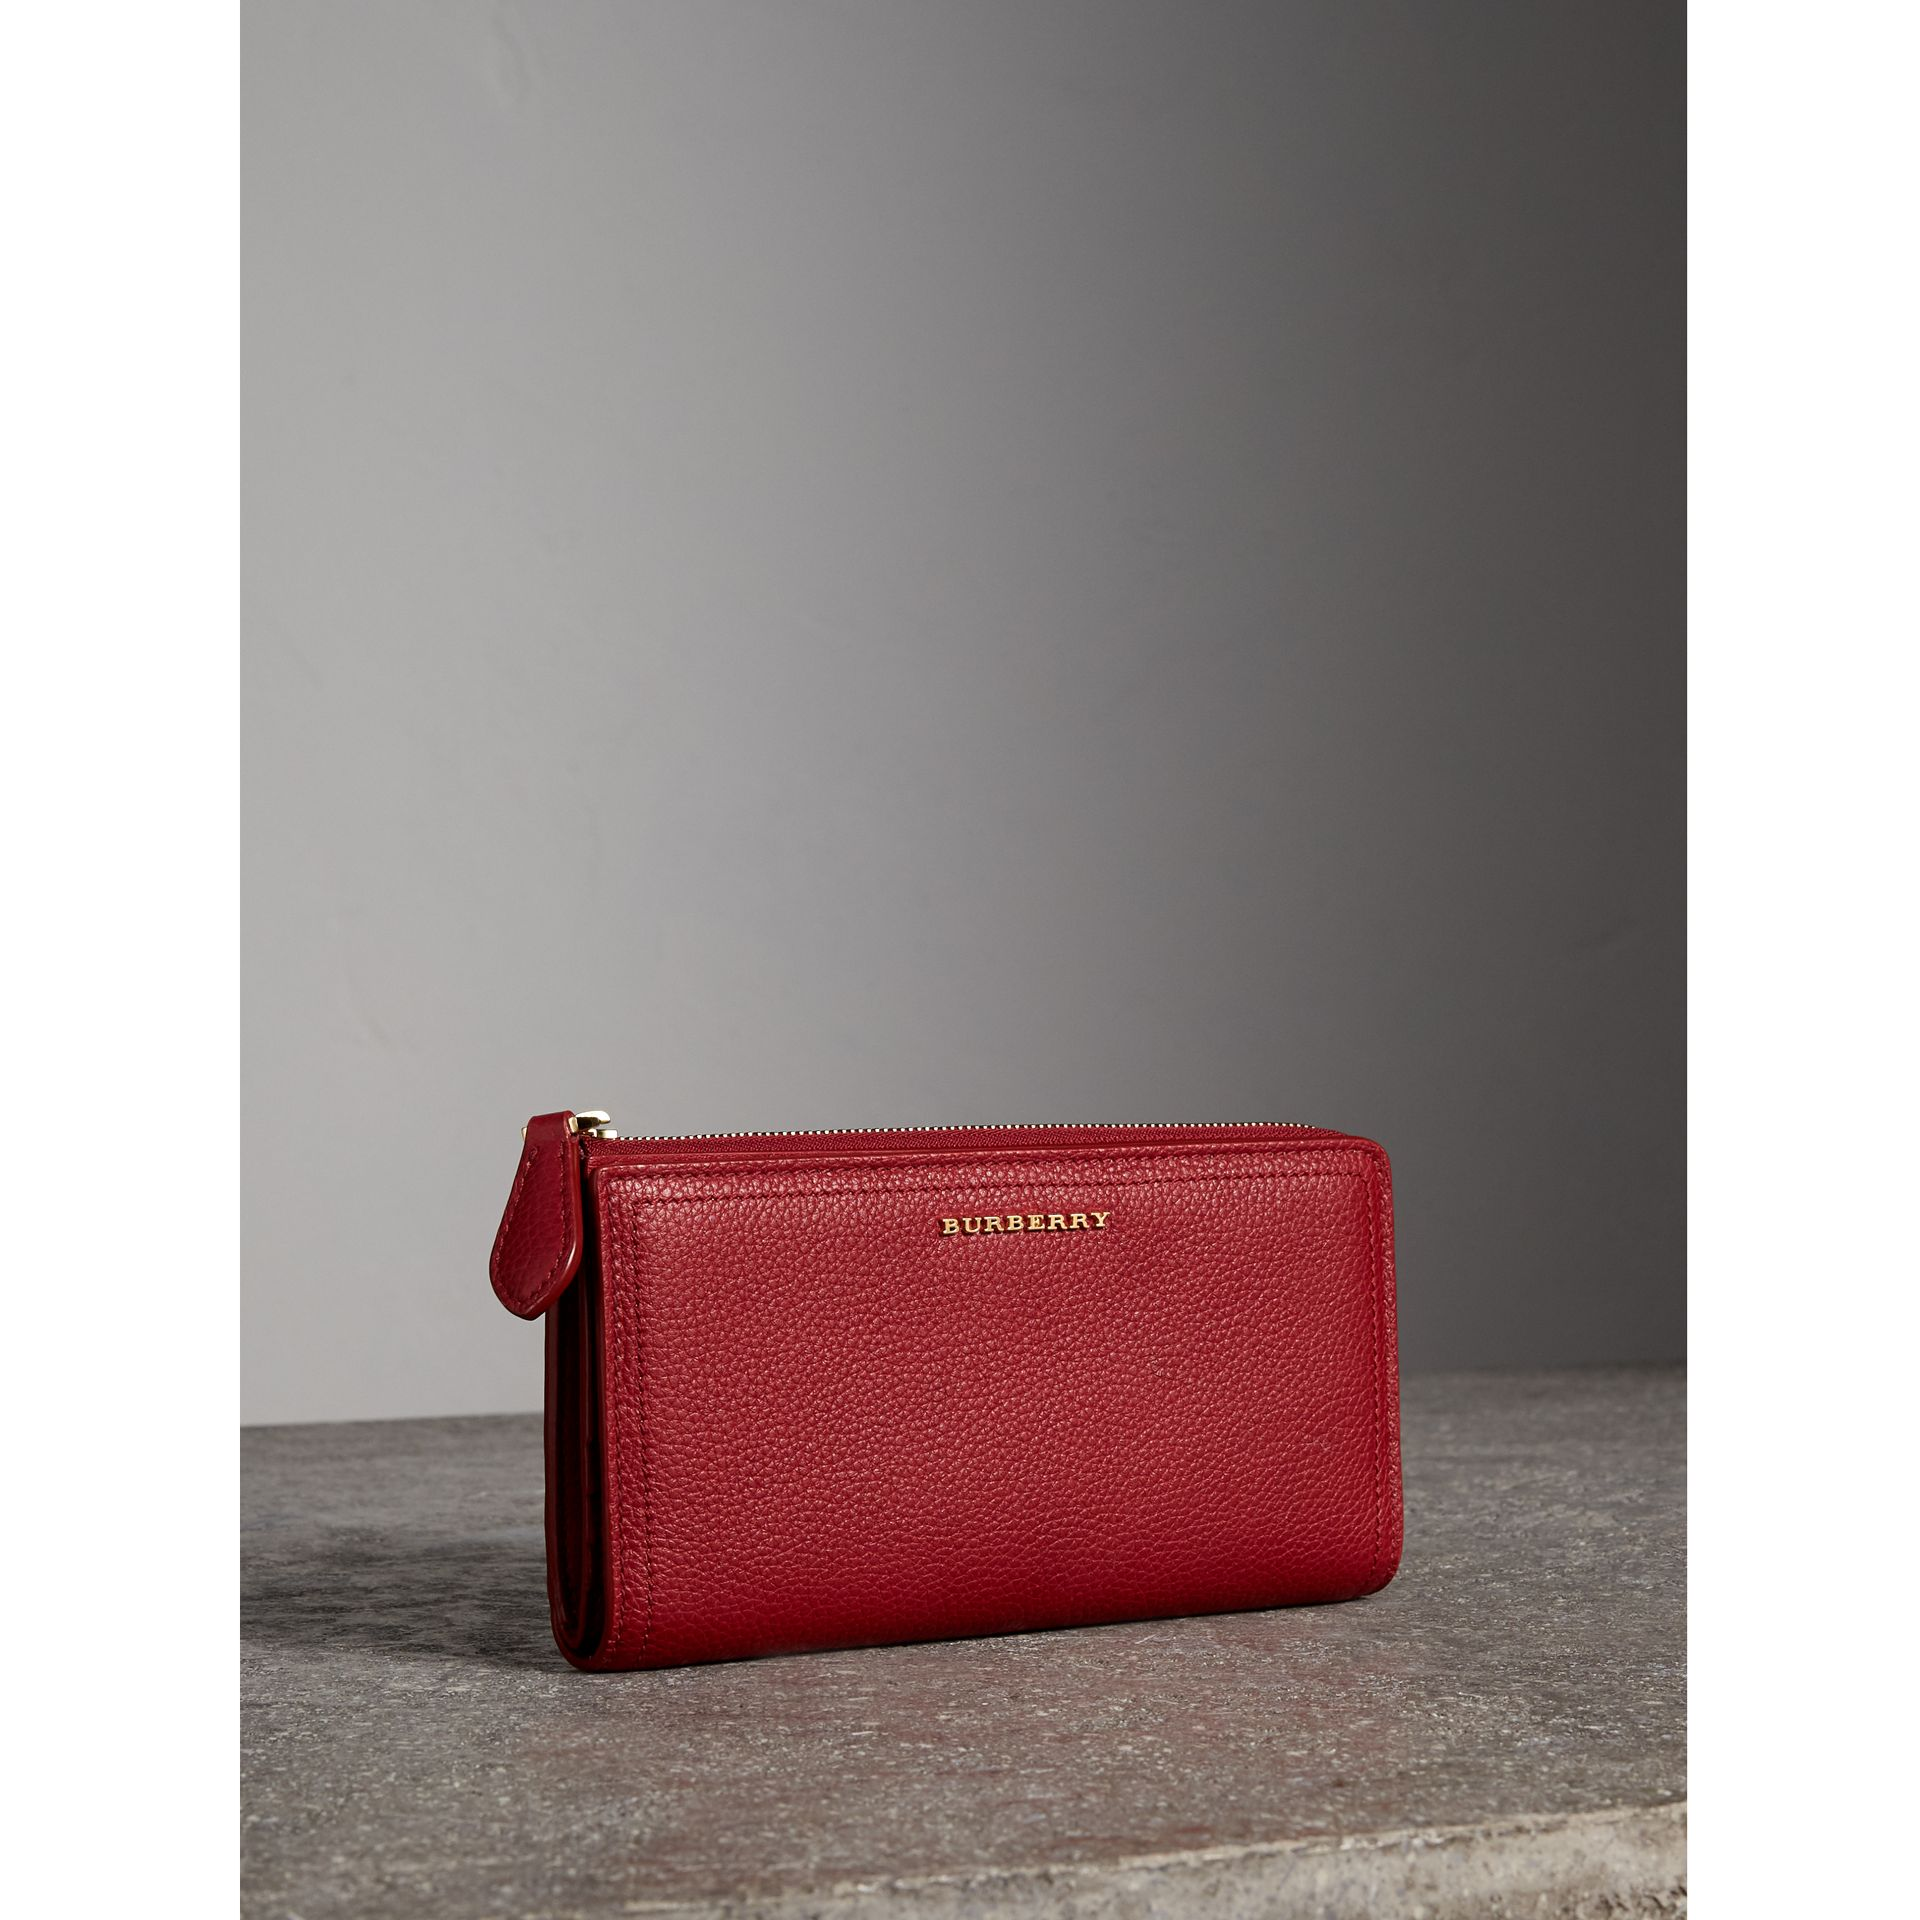 Grainy Leather Ziparound Wallet in Parade Red - Women | Burberry - gallery image 0